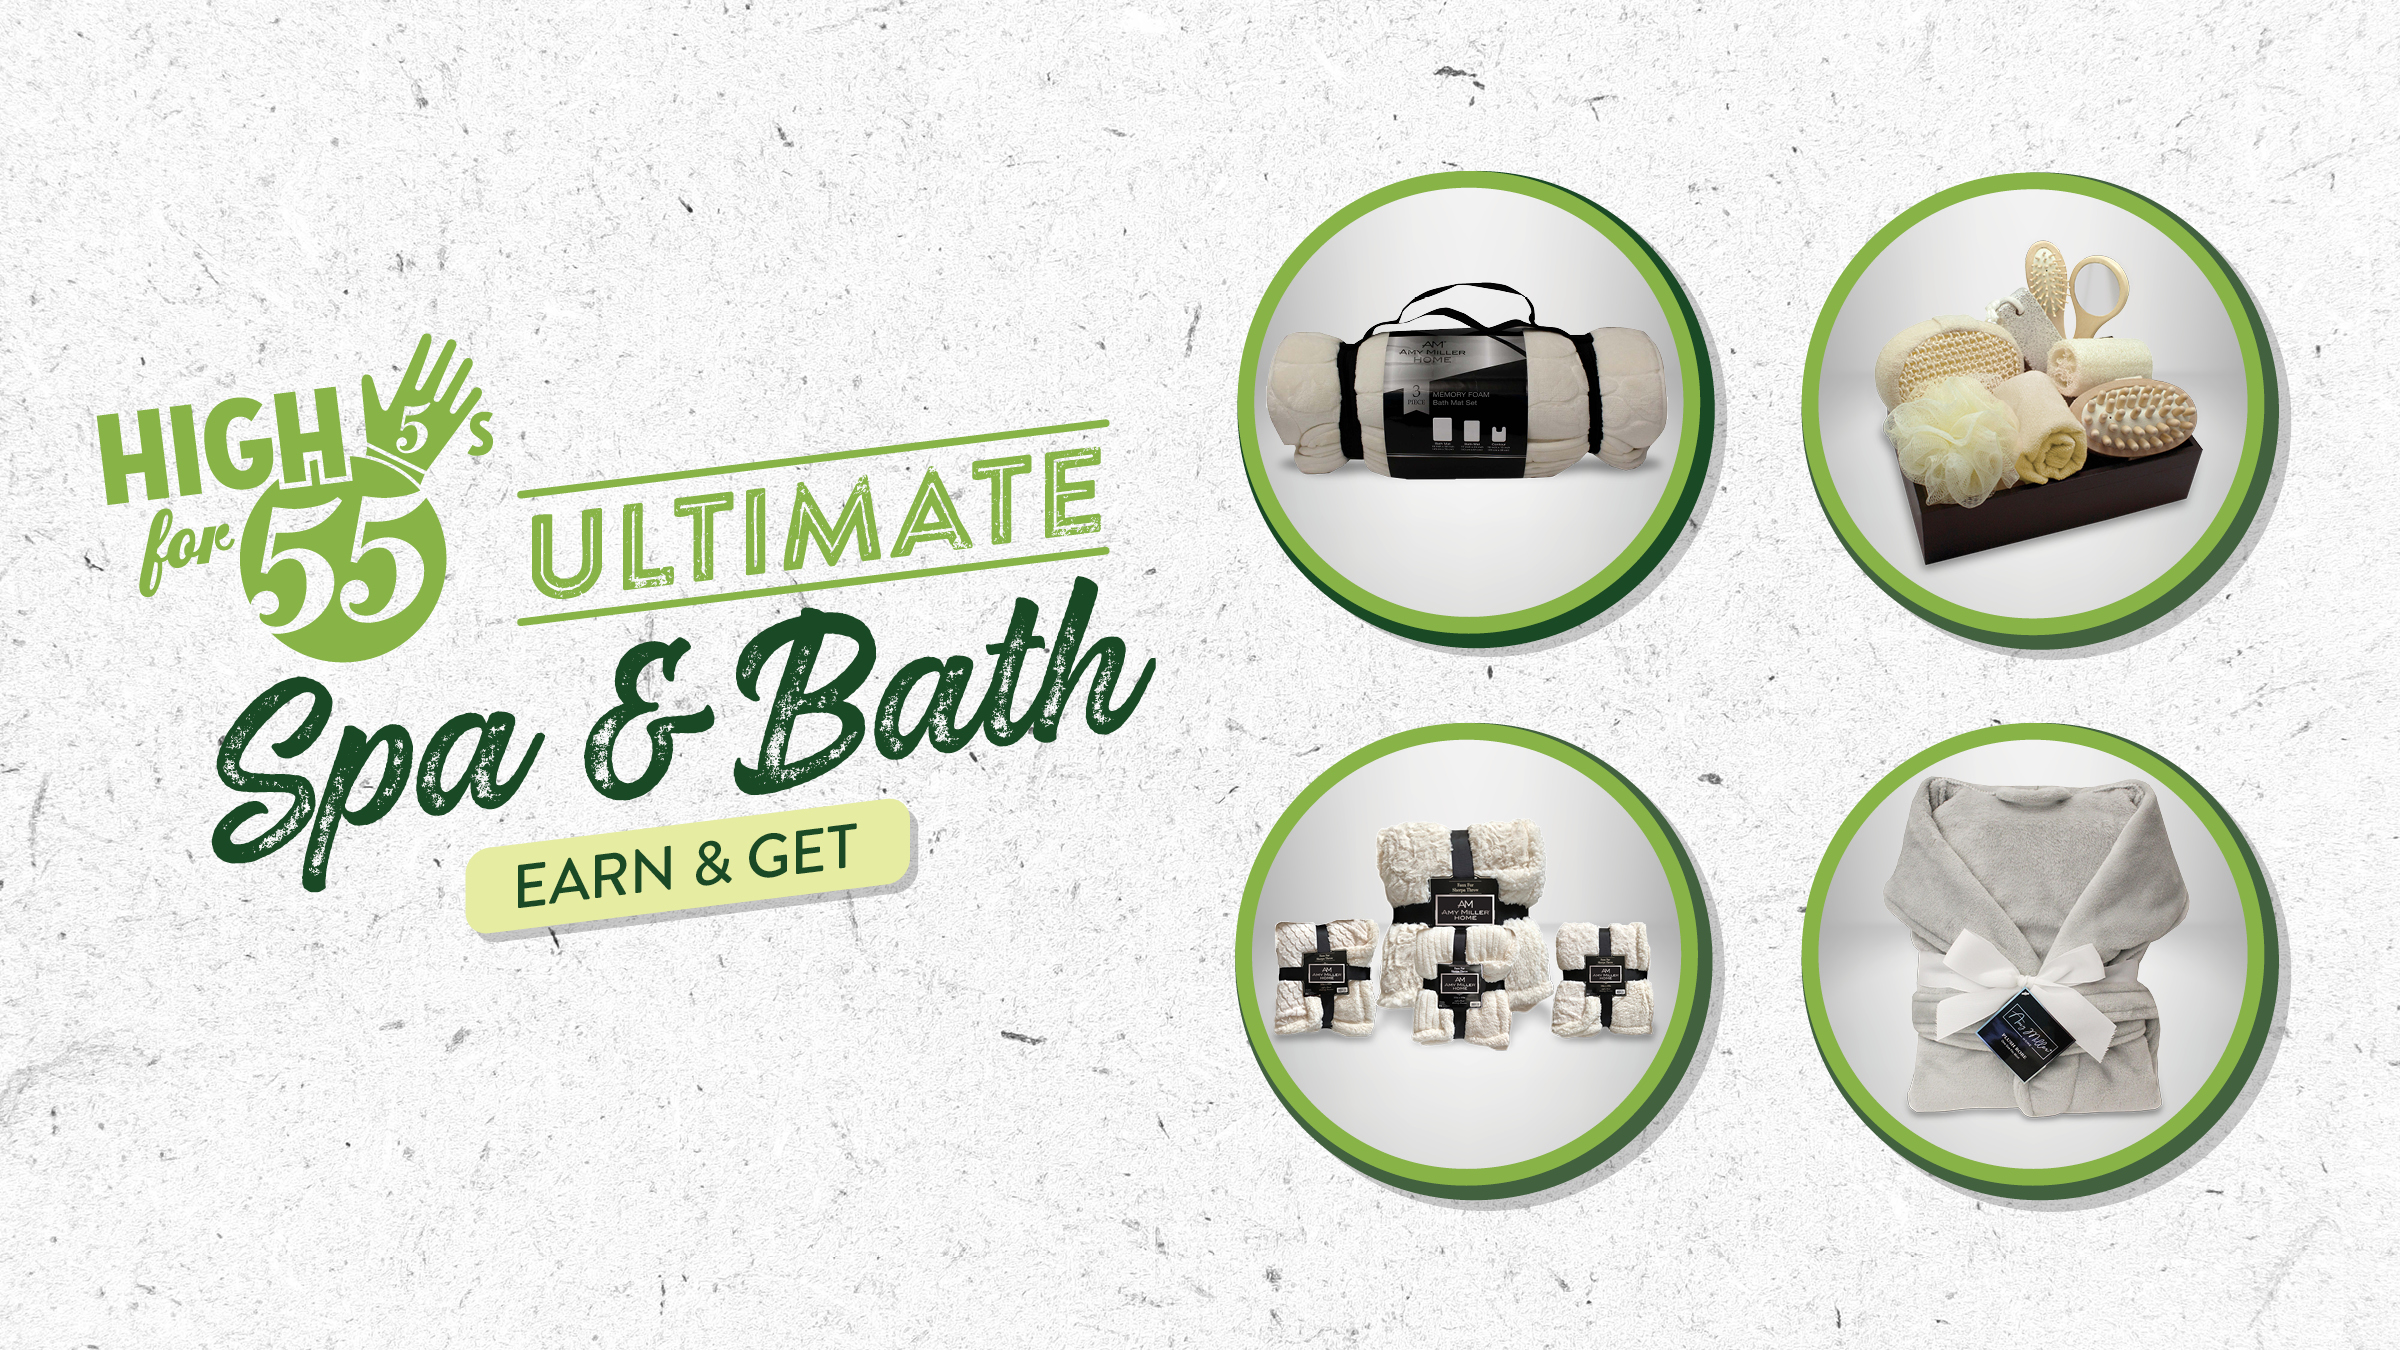 High 5s for 55s - Ultimate Spa & Bath Earn & Get